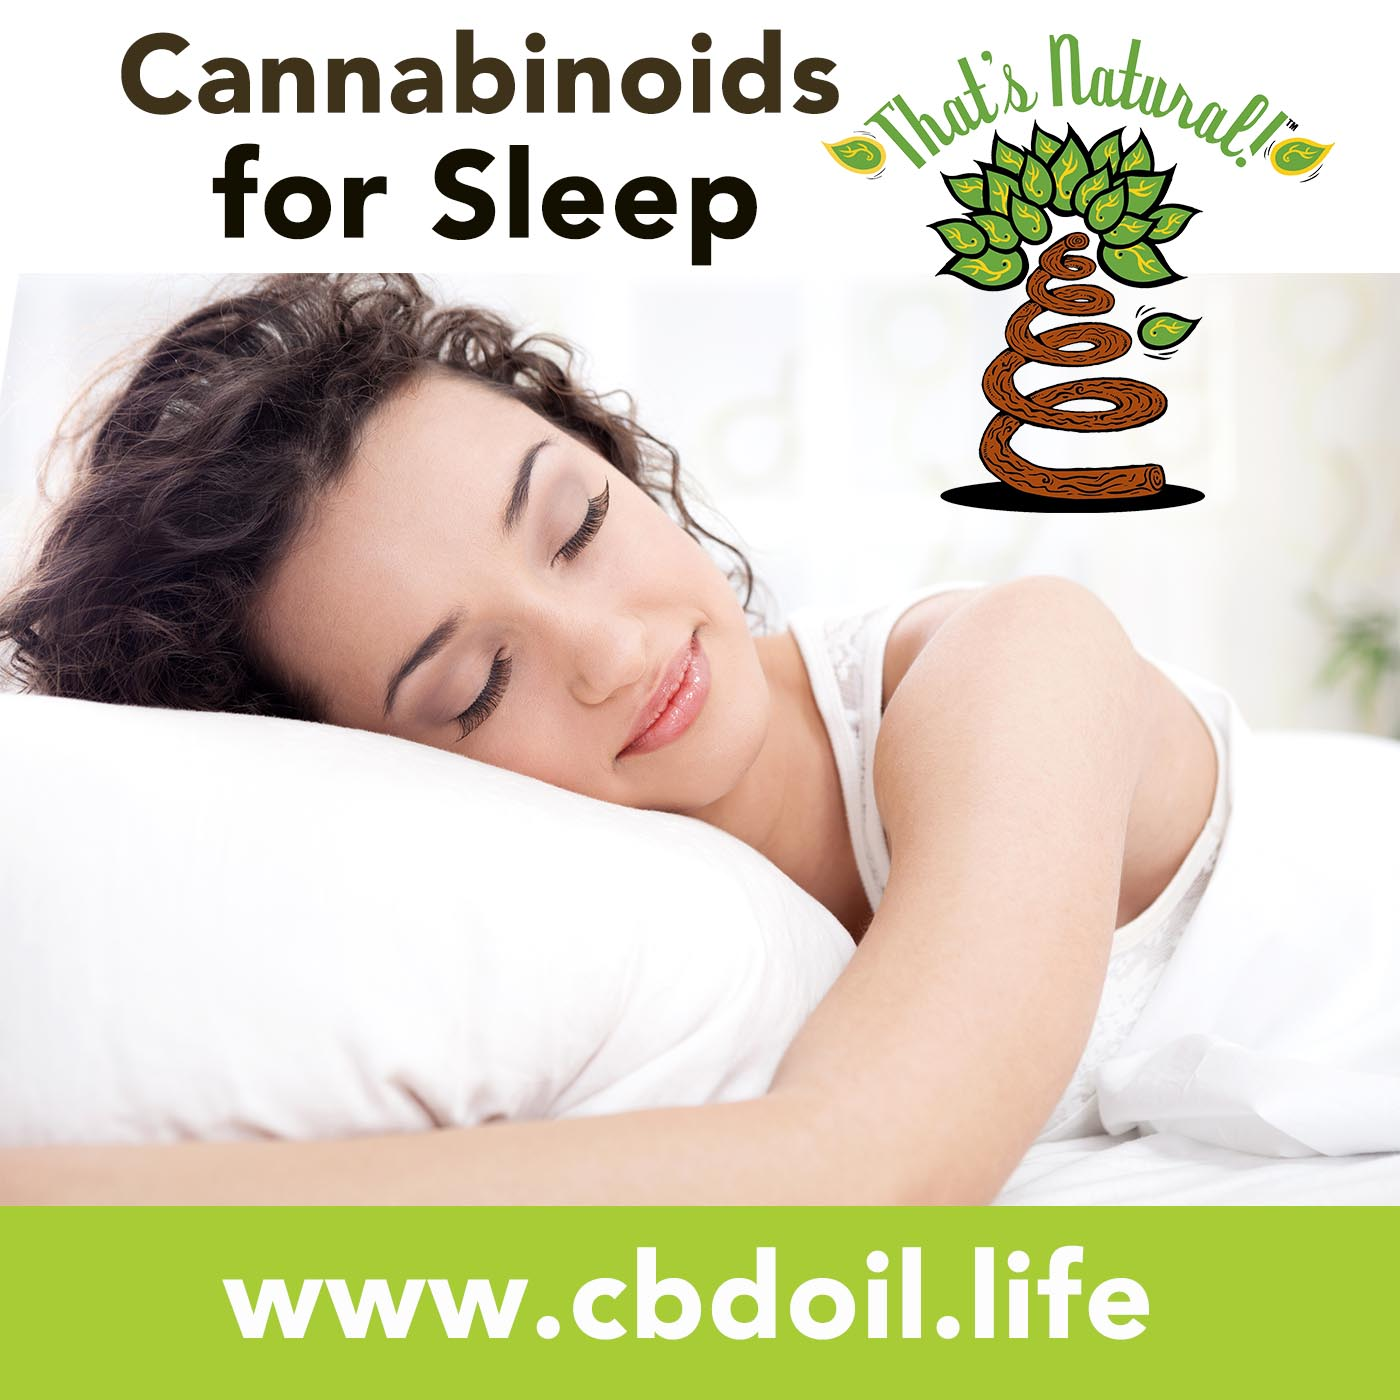 Cannabinoids for Sleep - Full Spectrum CBD-Rich Hemp Oil from That's Natural at www.cbdoil.life